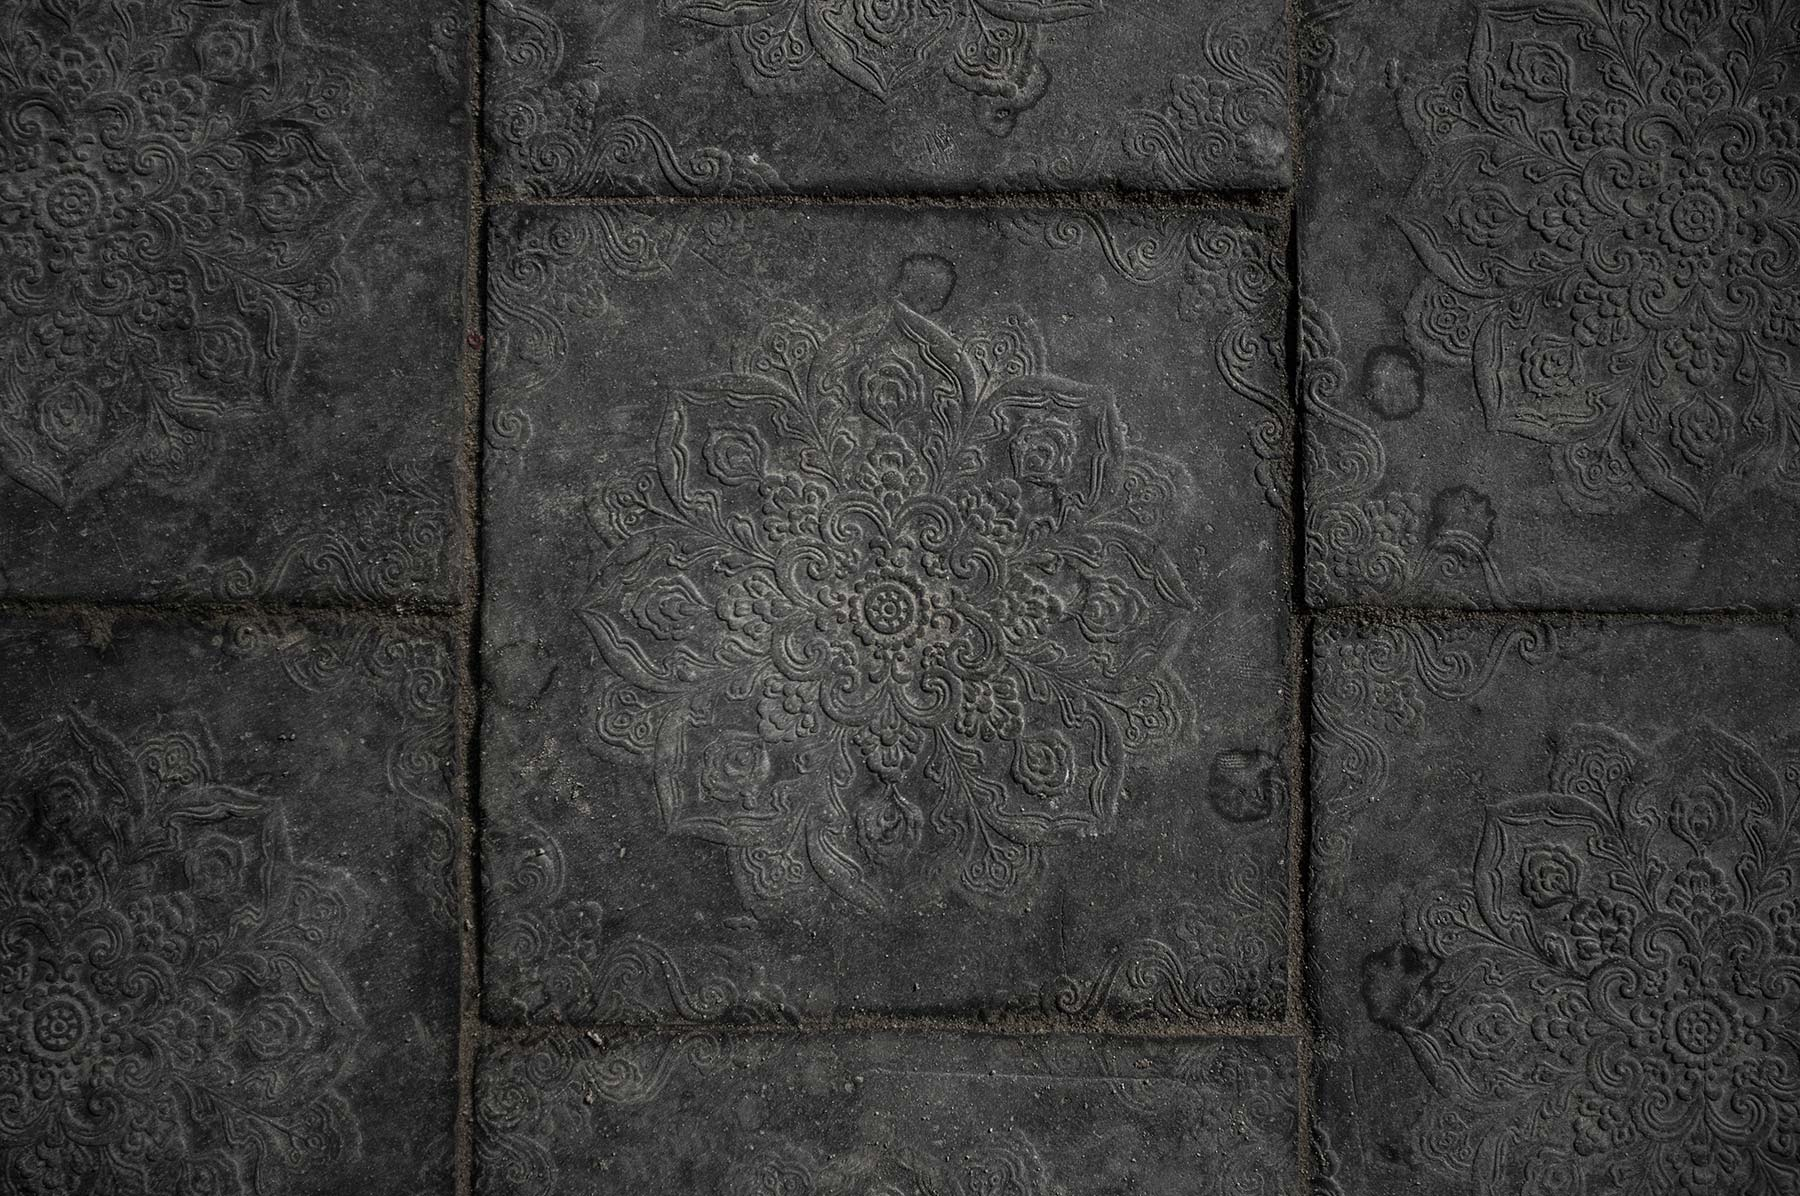 Floor tiles at the entrance of the temple.